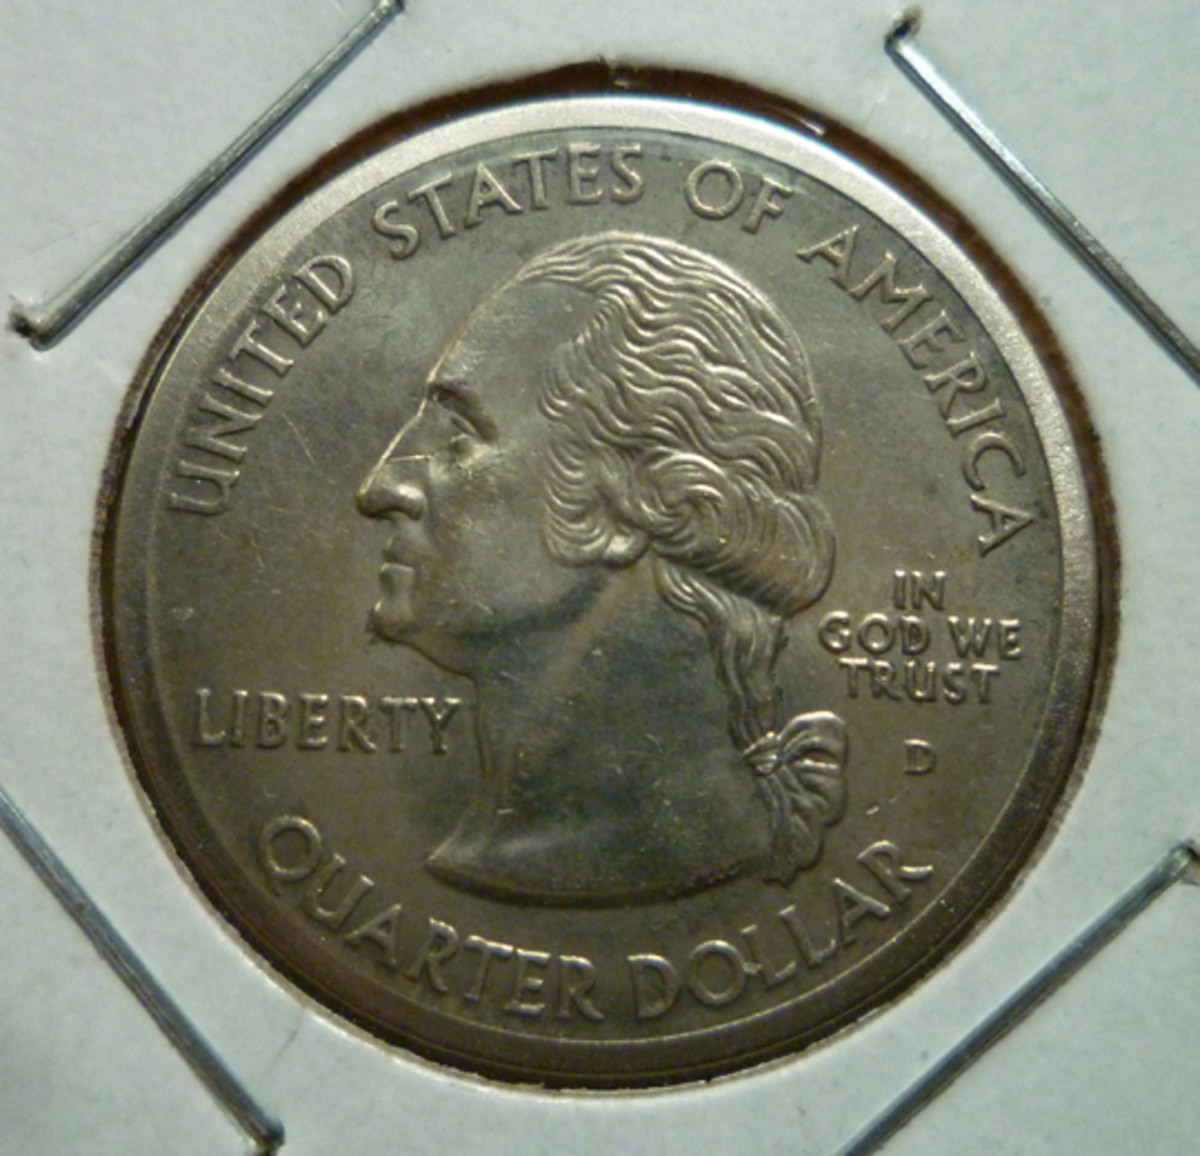 Arizona State Quarter Broad Strike Error. Obverse